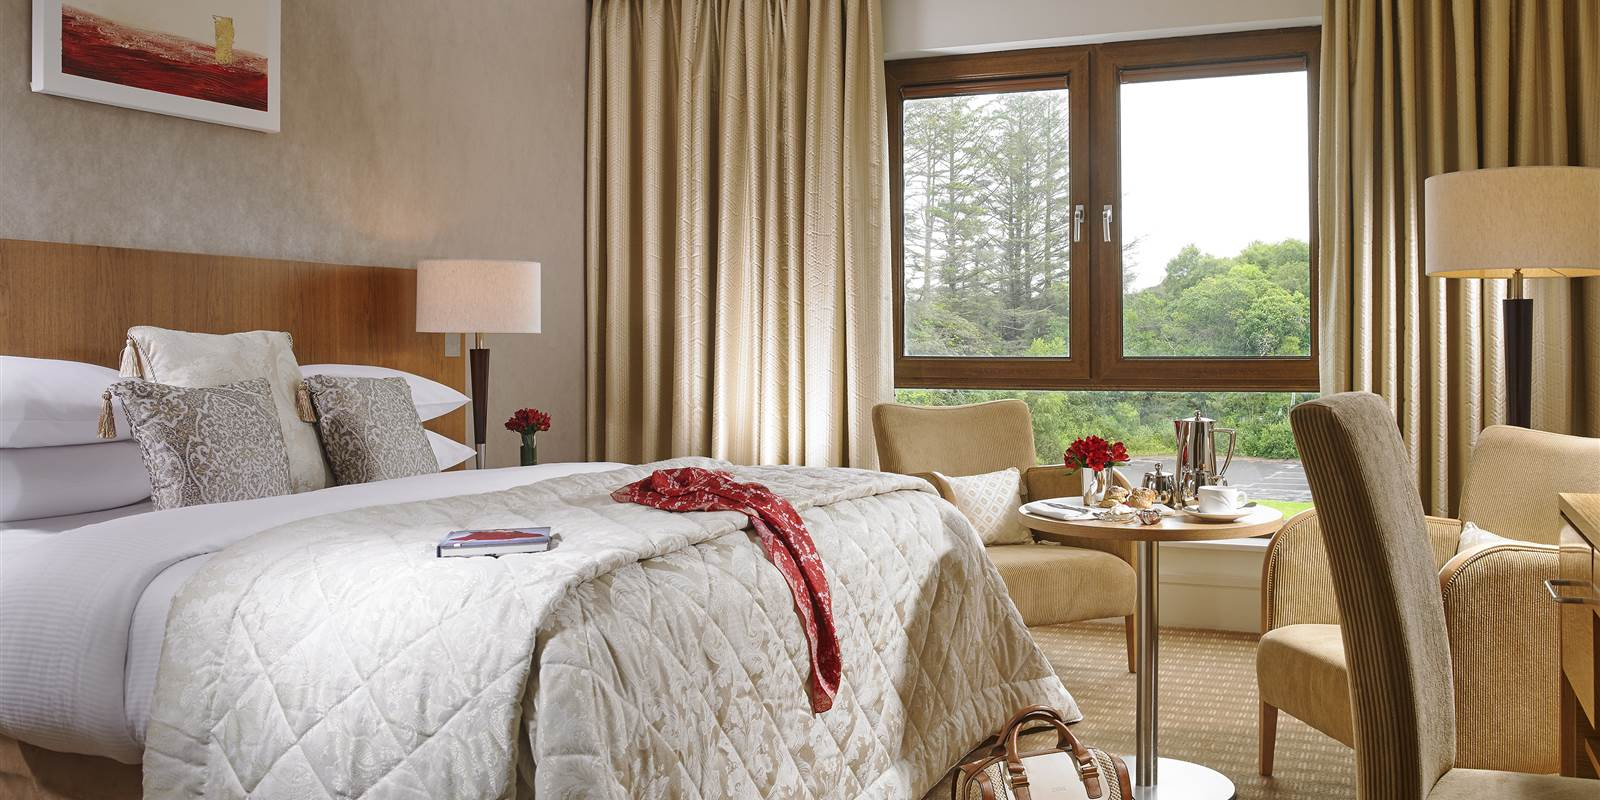 Hotels in Kerry with Mountain View 𝗙𝗿𝗼𝗺 €𝟵𝟬 𝗽𝗲𝗿 𝗿𝗼𝗼𝗺 and breakfast included. SNEEM 4 STAR HOTEL